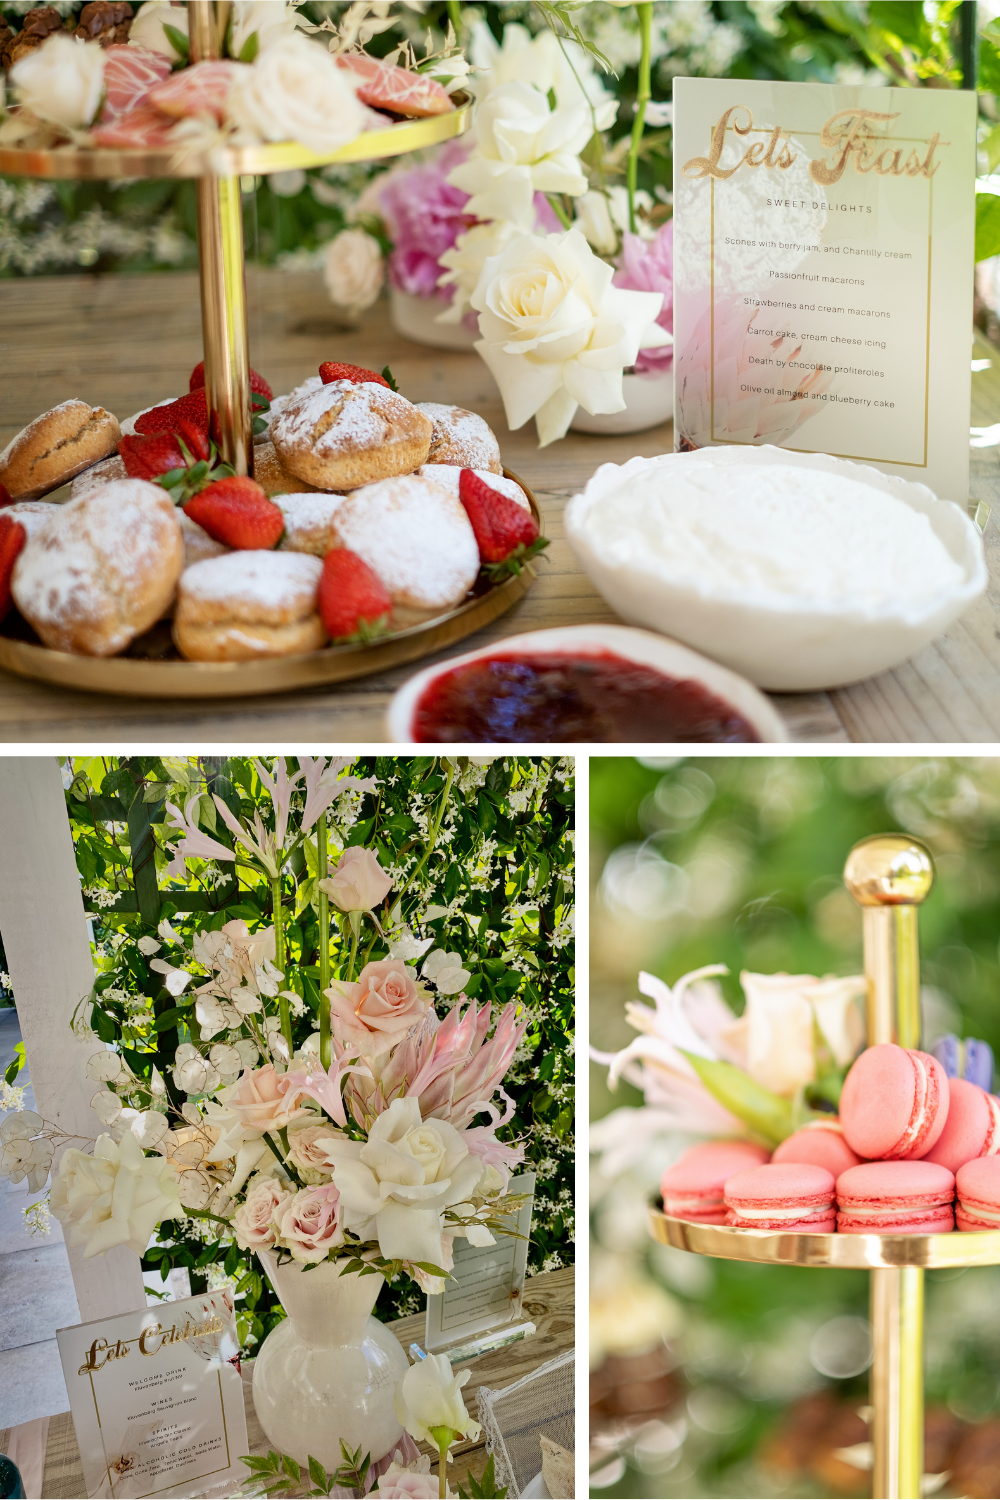 Outdoor table set with macarons and scones